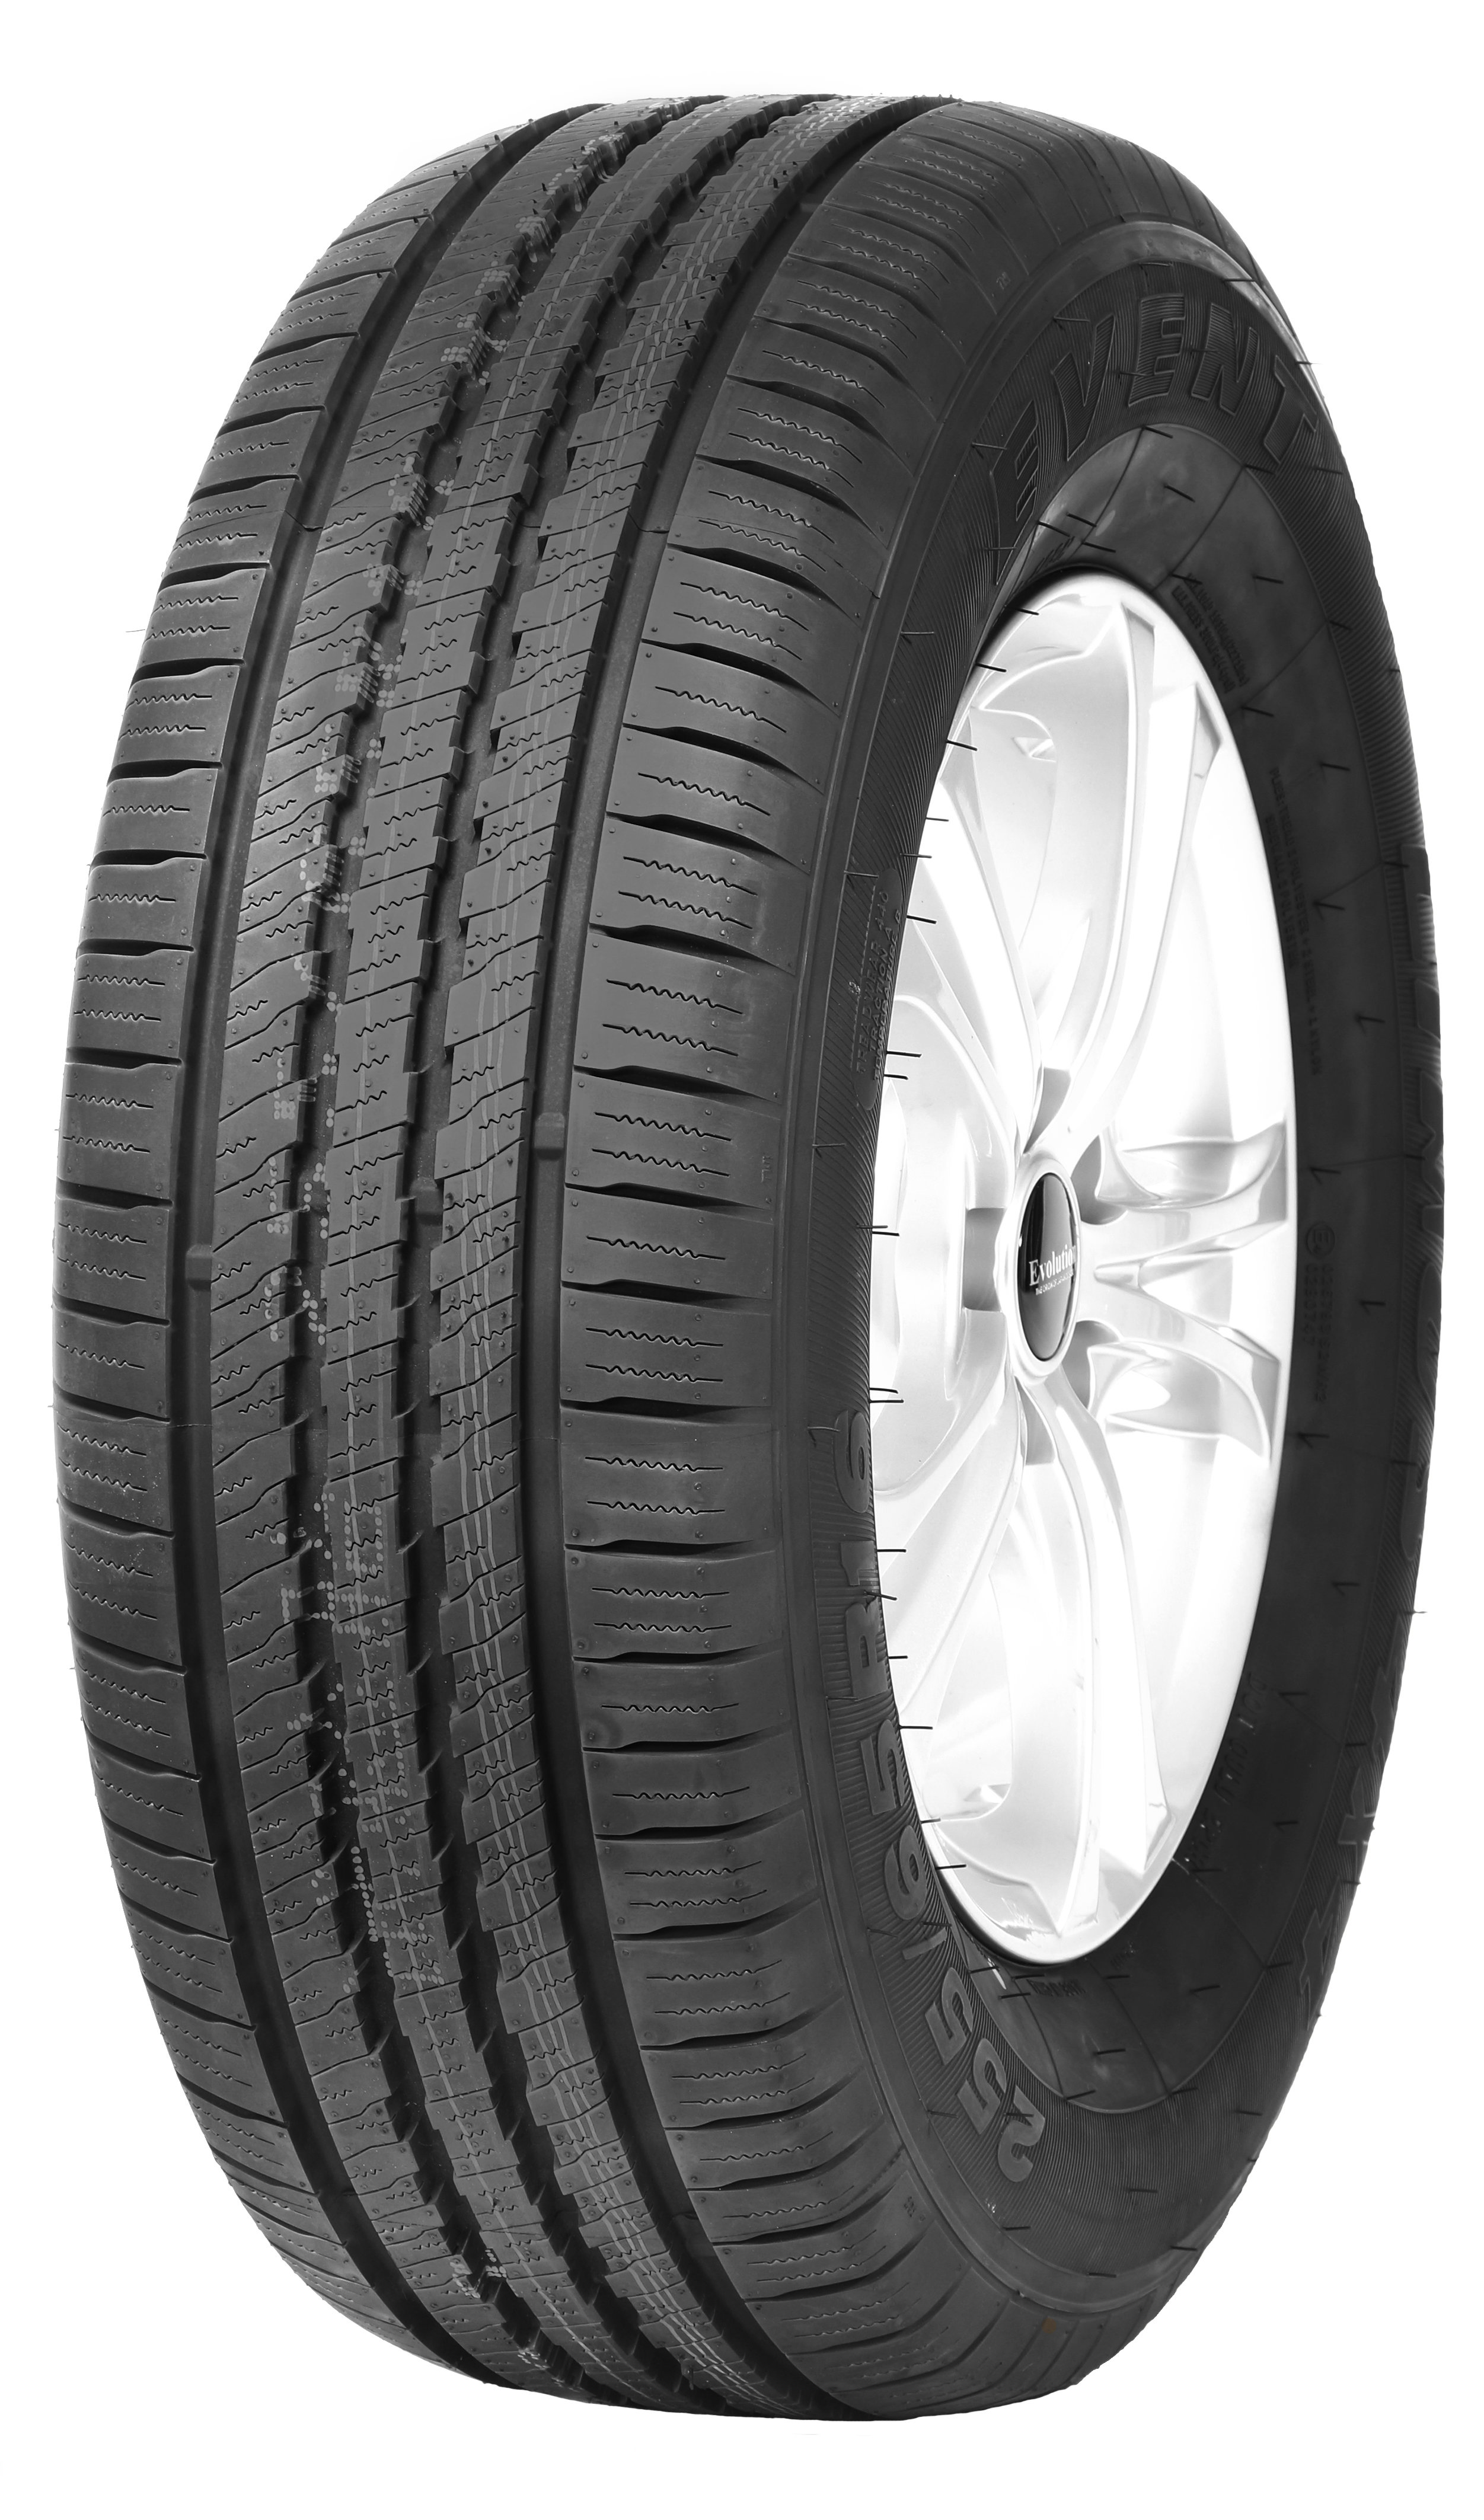 event-limus-4x4-265-70r16112h